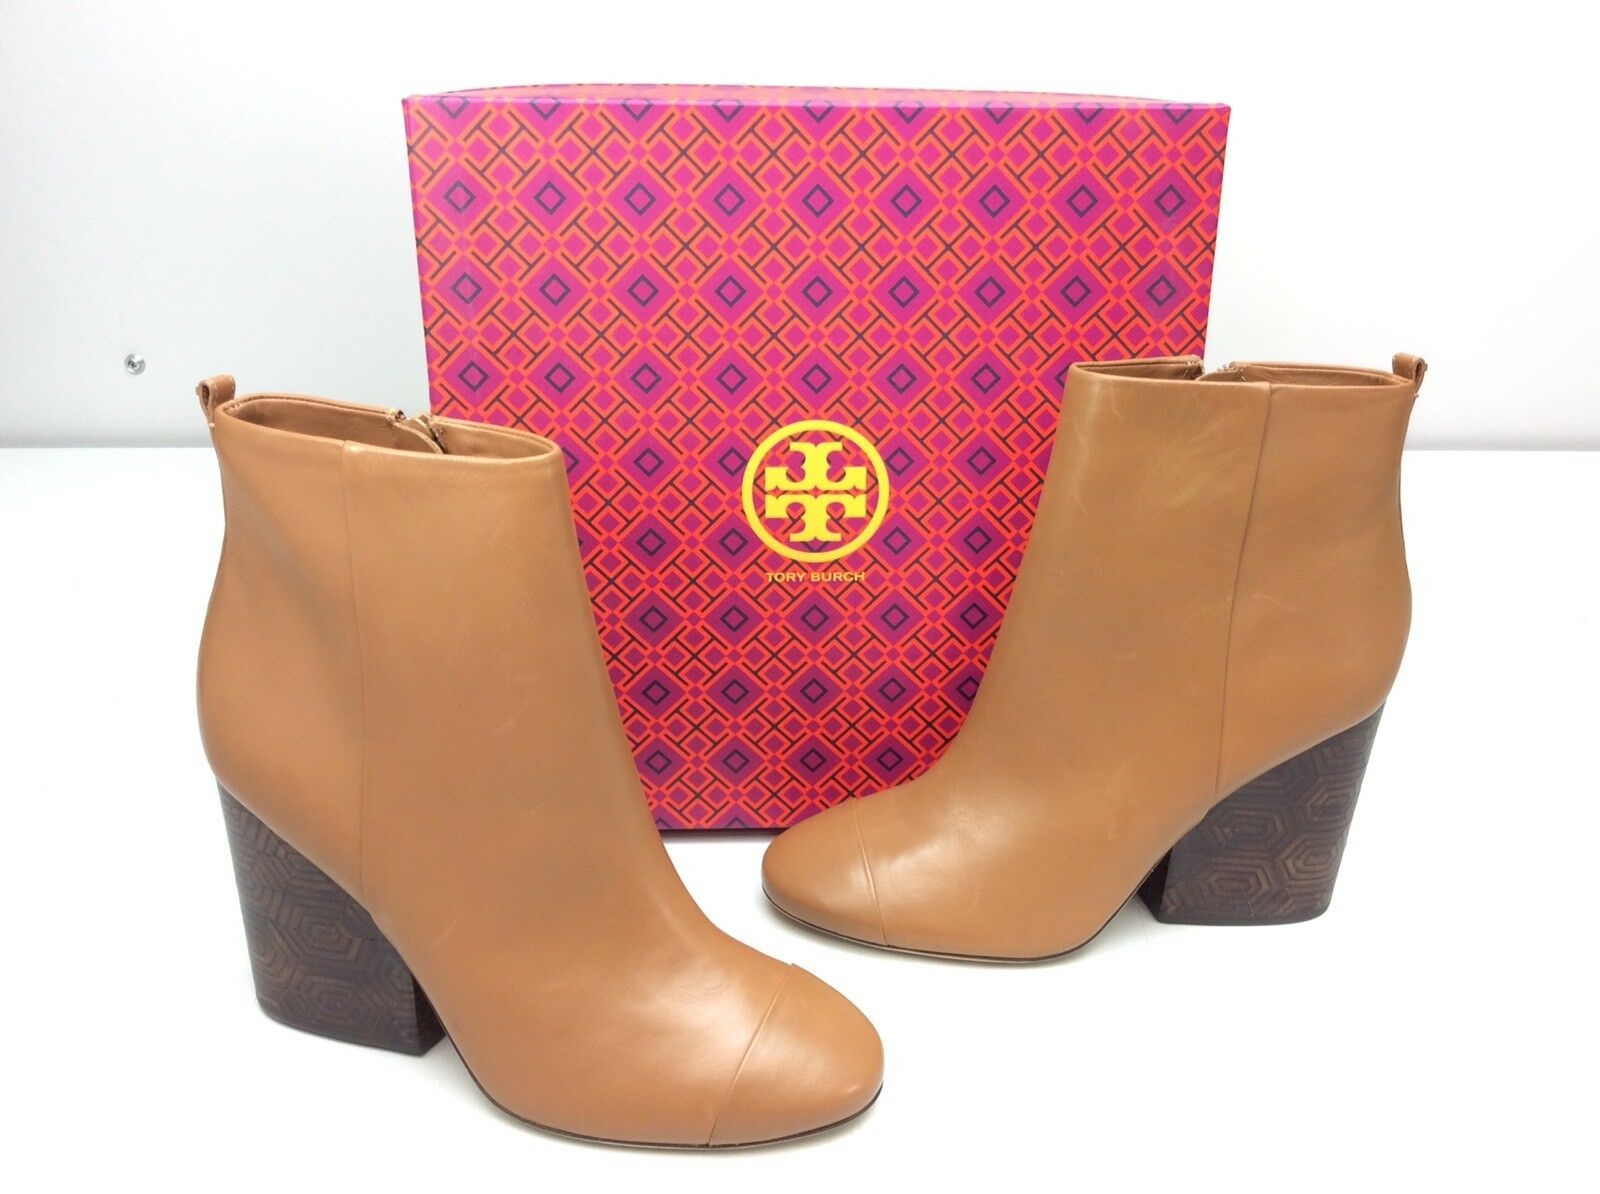 shopping online di moda TORY BURCH Grove 100 MM avvioie stivali Dimensione 10.5 Royal Royal Royal Tan Calf Leather Block Heel  acquista marca